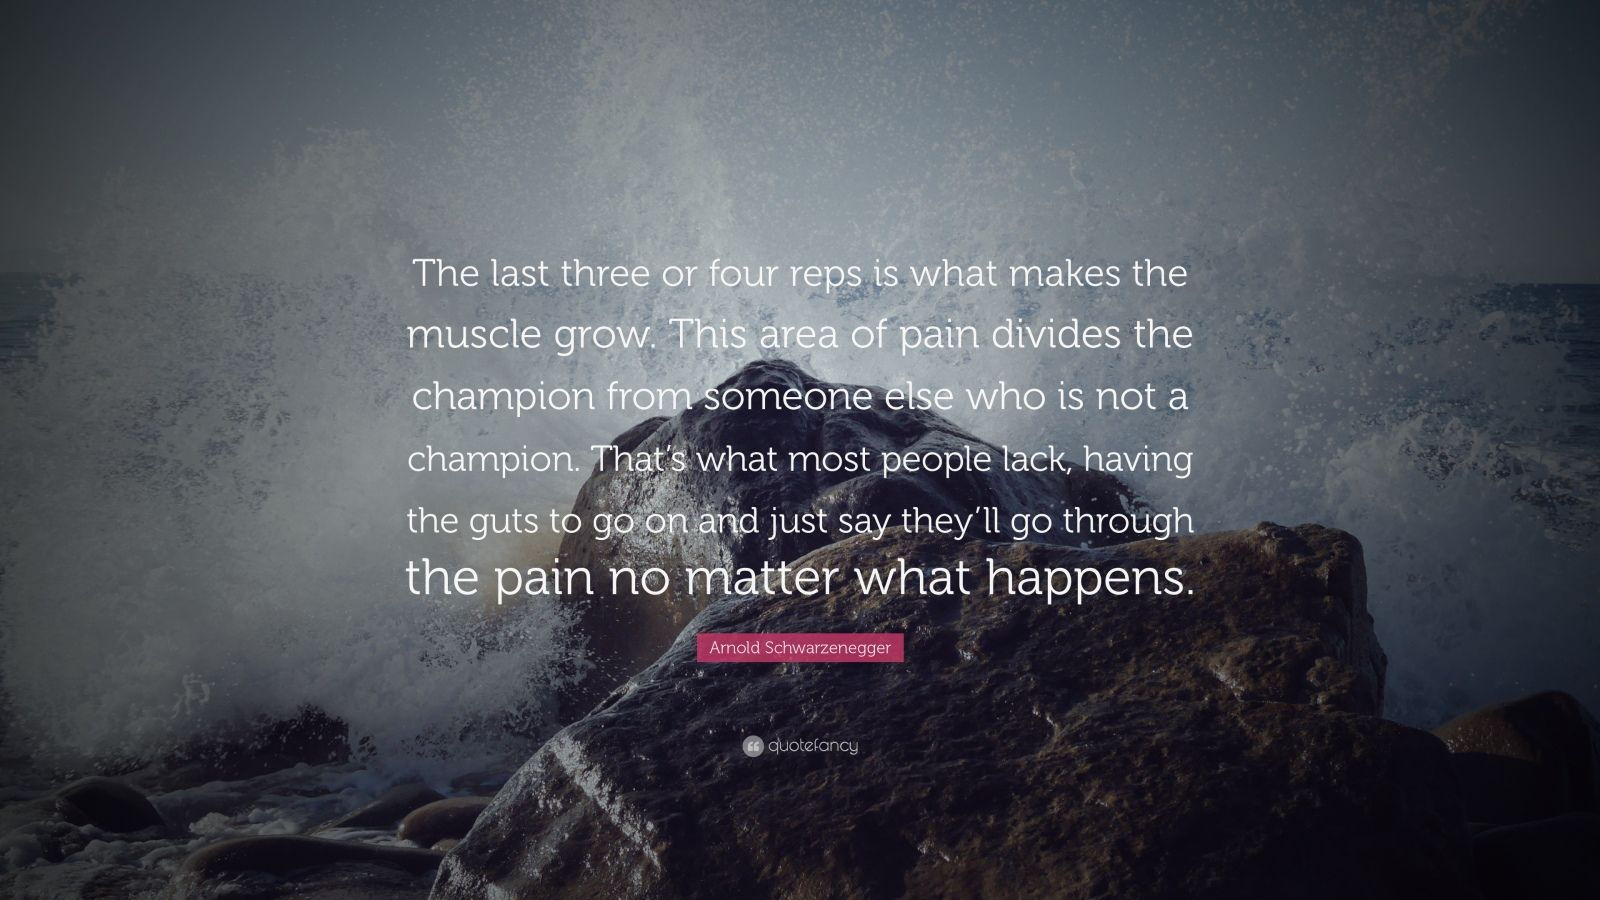 """Arnold Schwarzenegger Quote: """"The last three or four reps is what makes the muscle grow. This area of pain divides the champion from someone else who is not a champion. That's what most people lack, having the guts to go on and just say they'll go through the pain no matter what happens."""""""